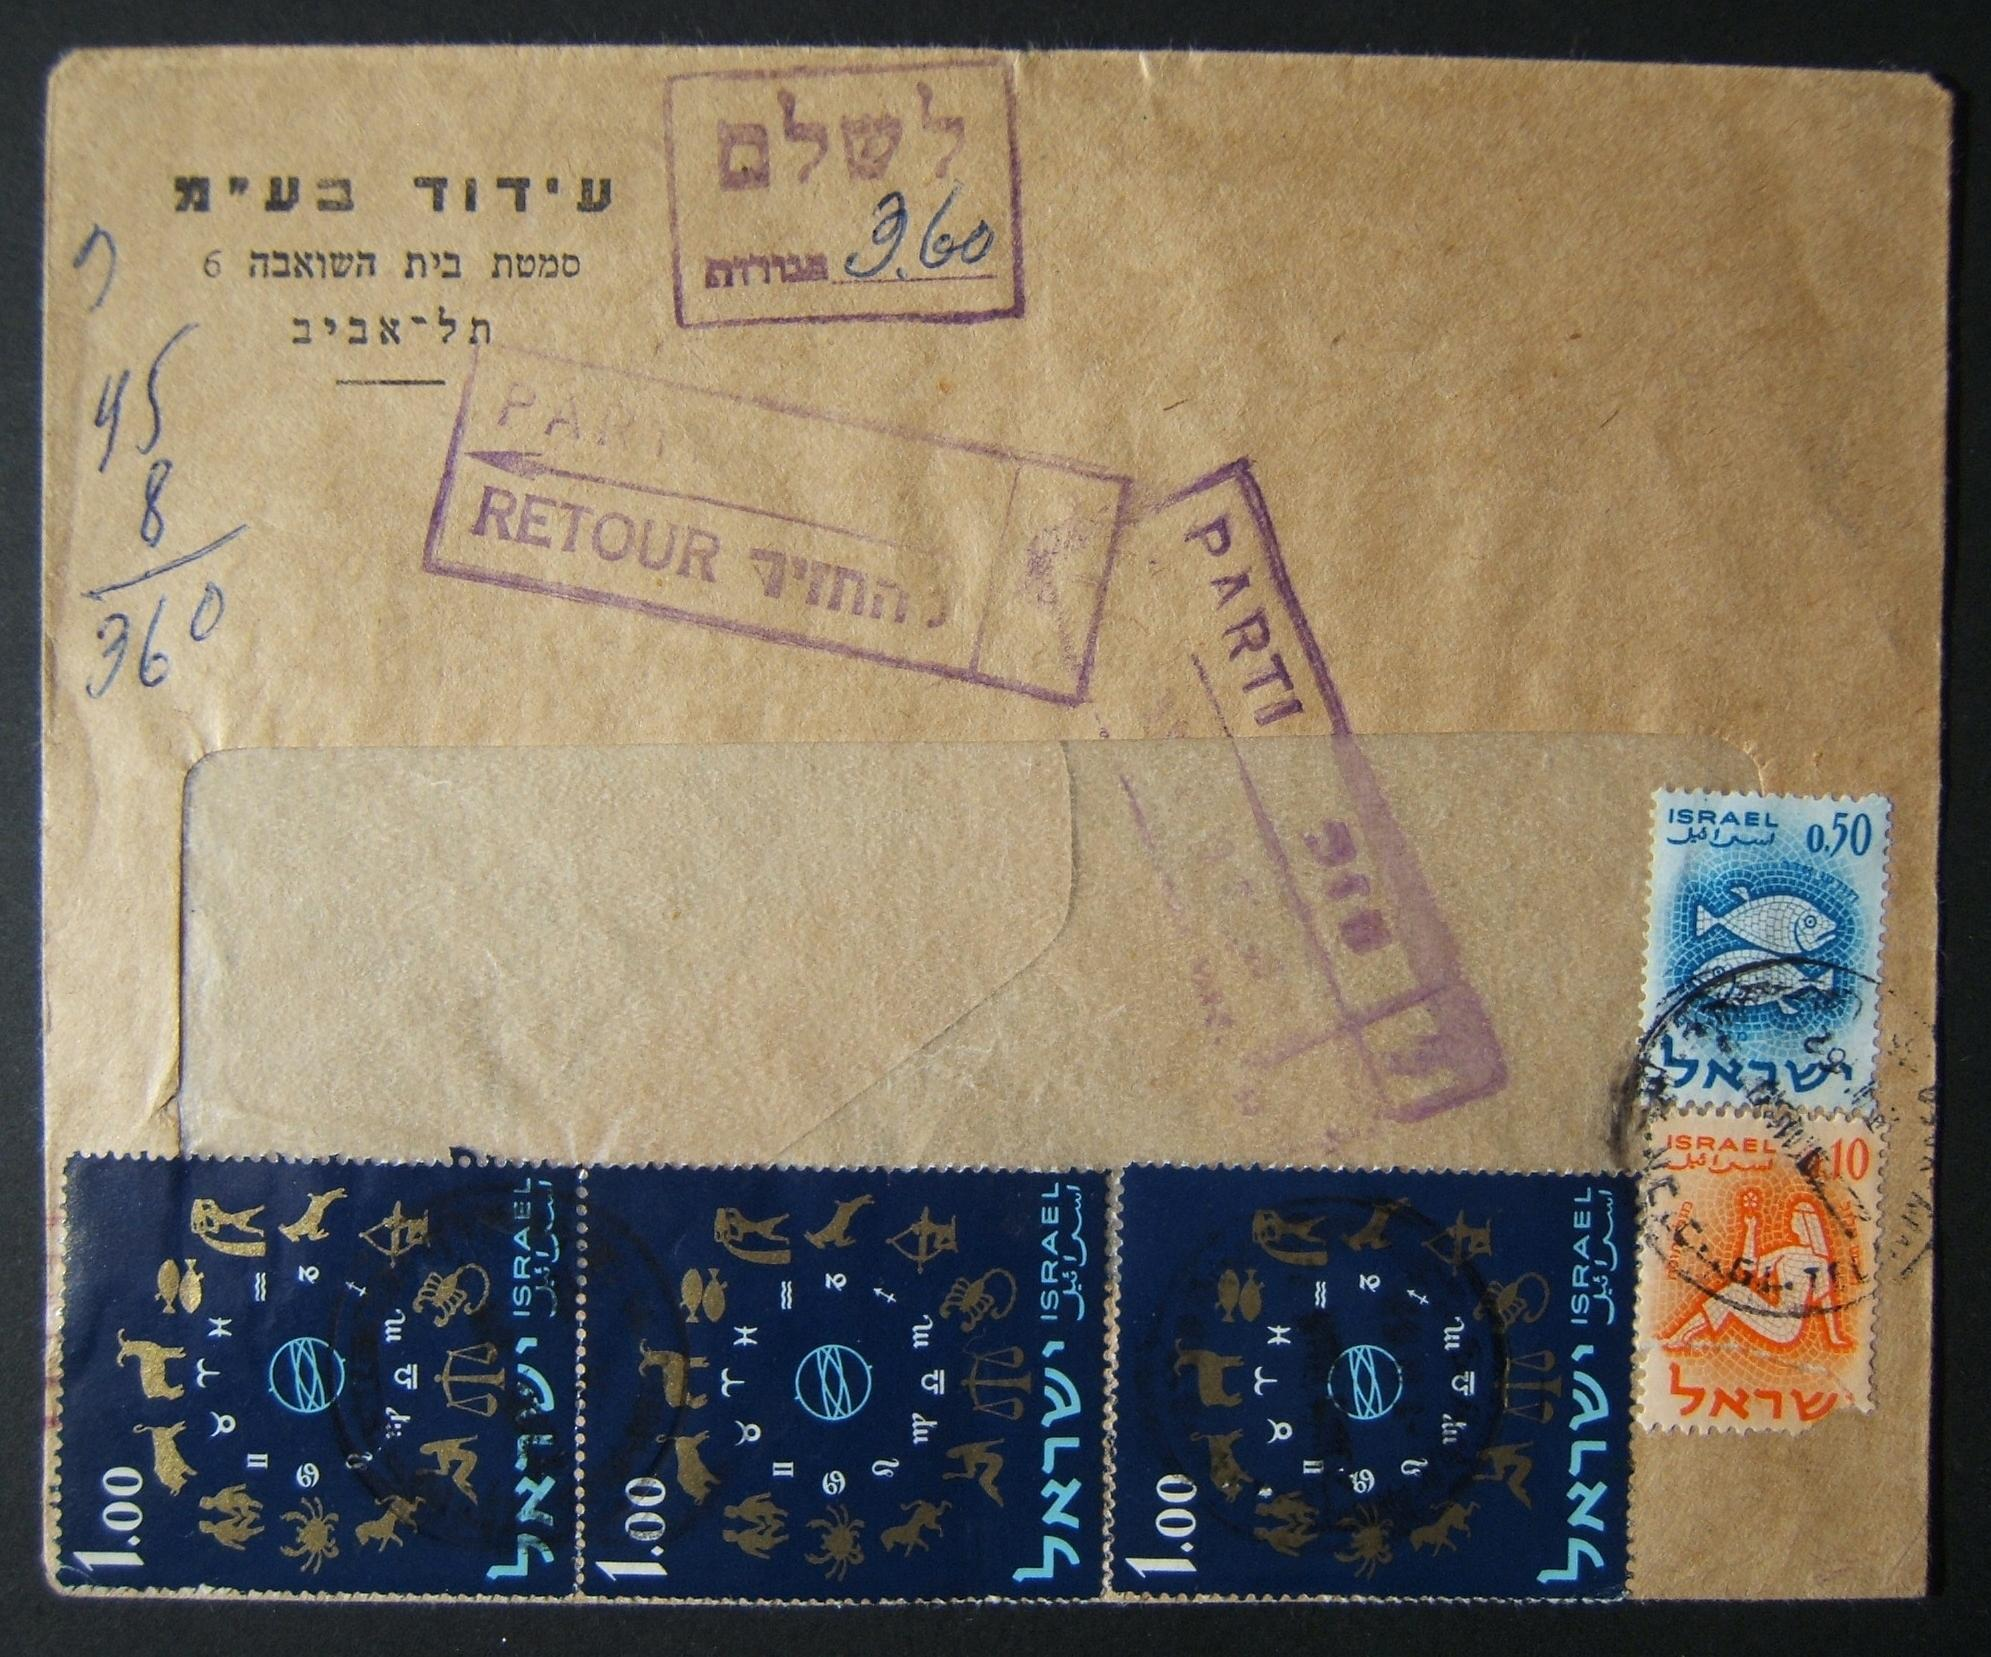 1962 domestic 'top of the pile' taxed franking: Nov(?) 1962 printed matter commercial cover ex TLV branch of Idud Ltd. franked by machine prepayment at DO-11 period 8 Ag PM rate (a